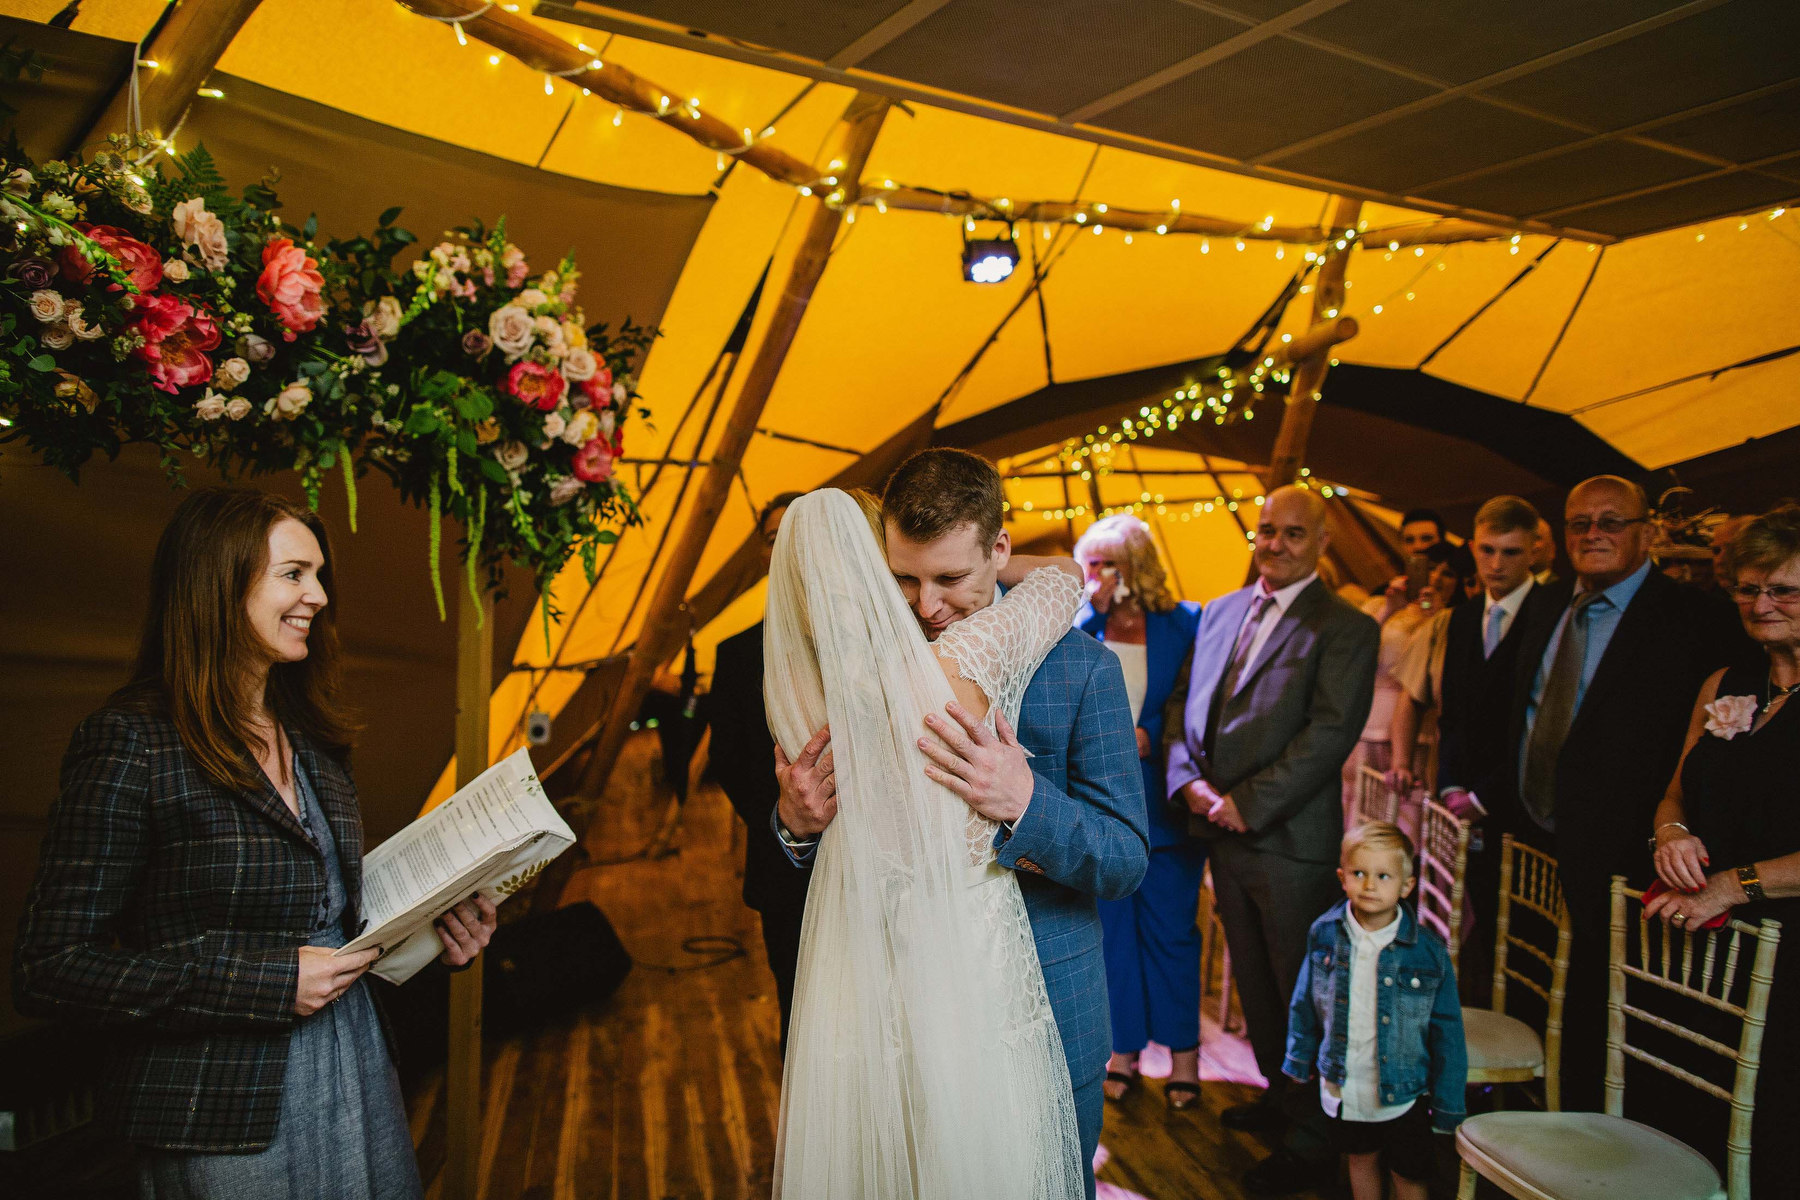 Inkersall farm wedding 026